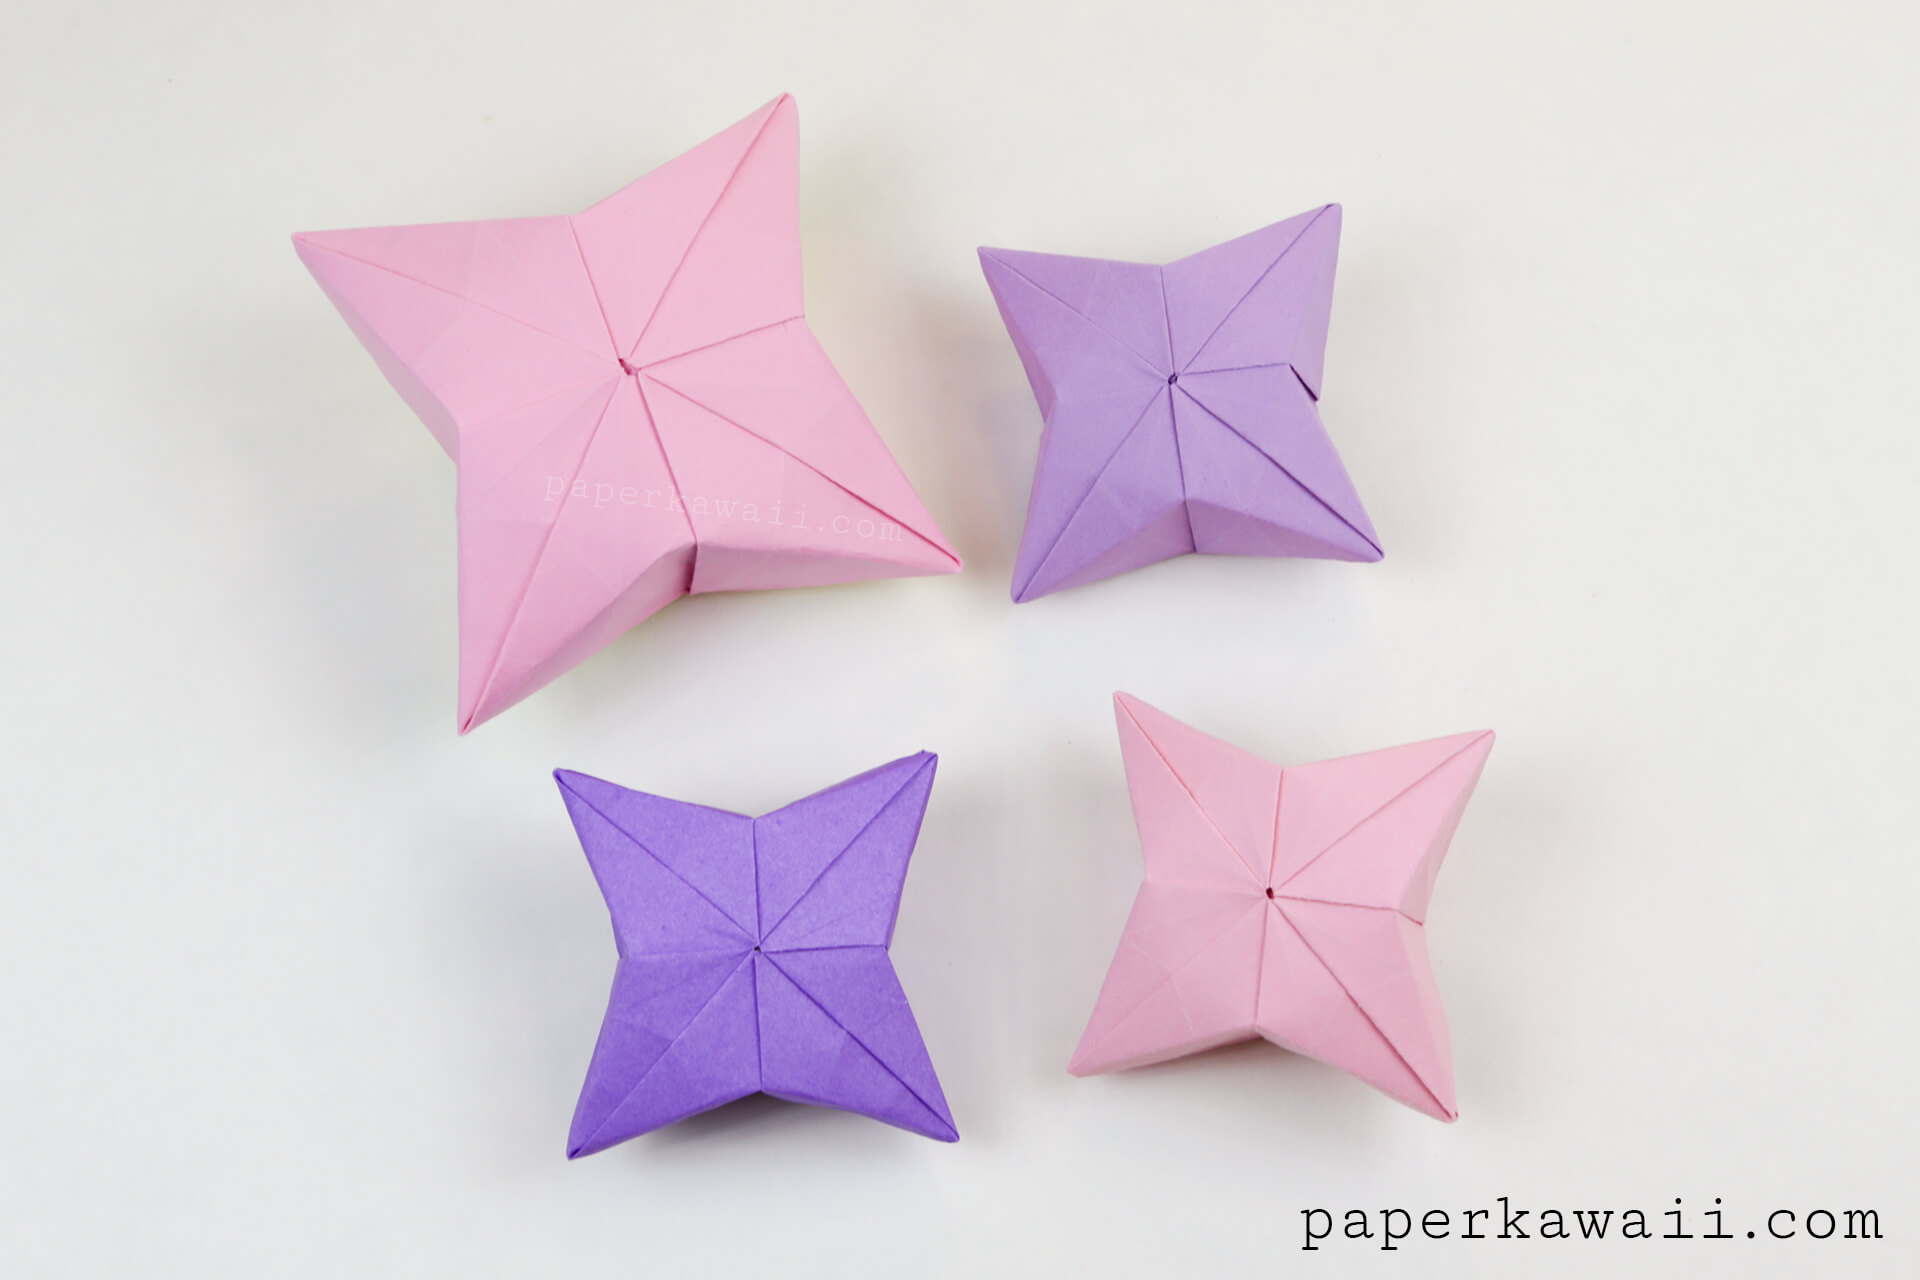 3D Origami Puffy Star Tutorial - Paper Kawaii - photo#27